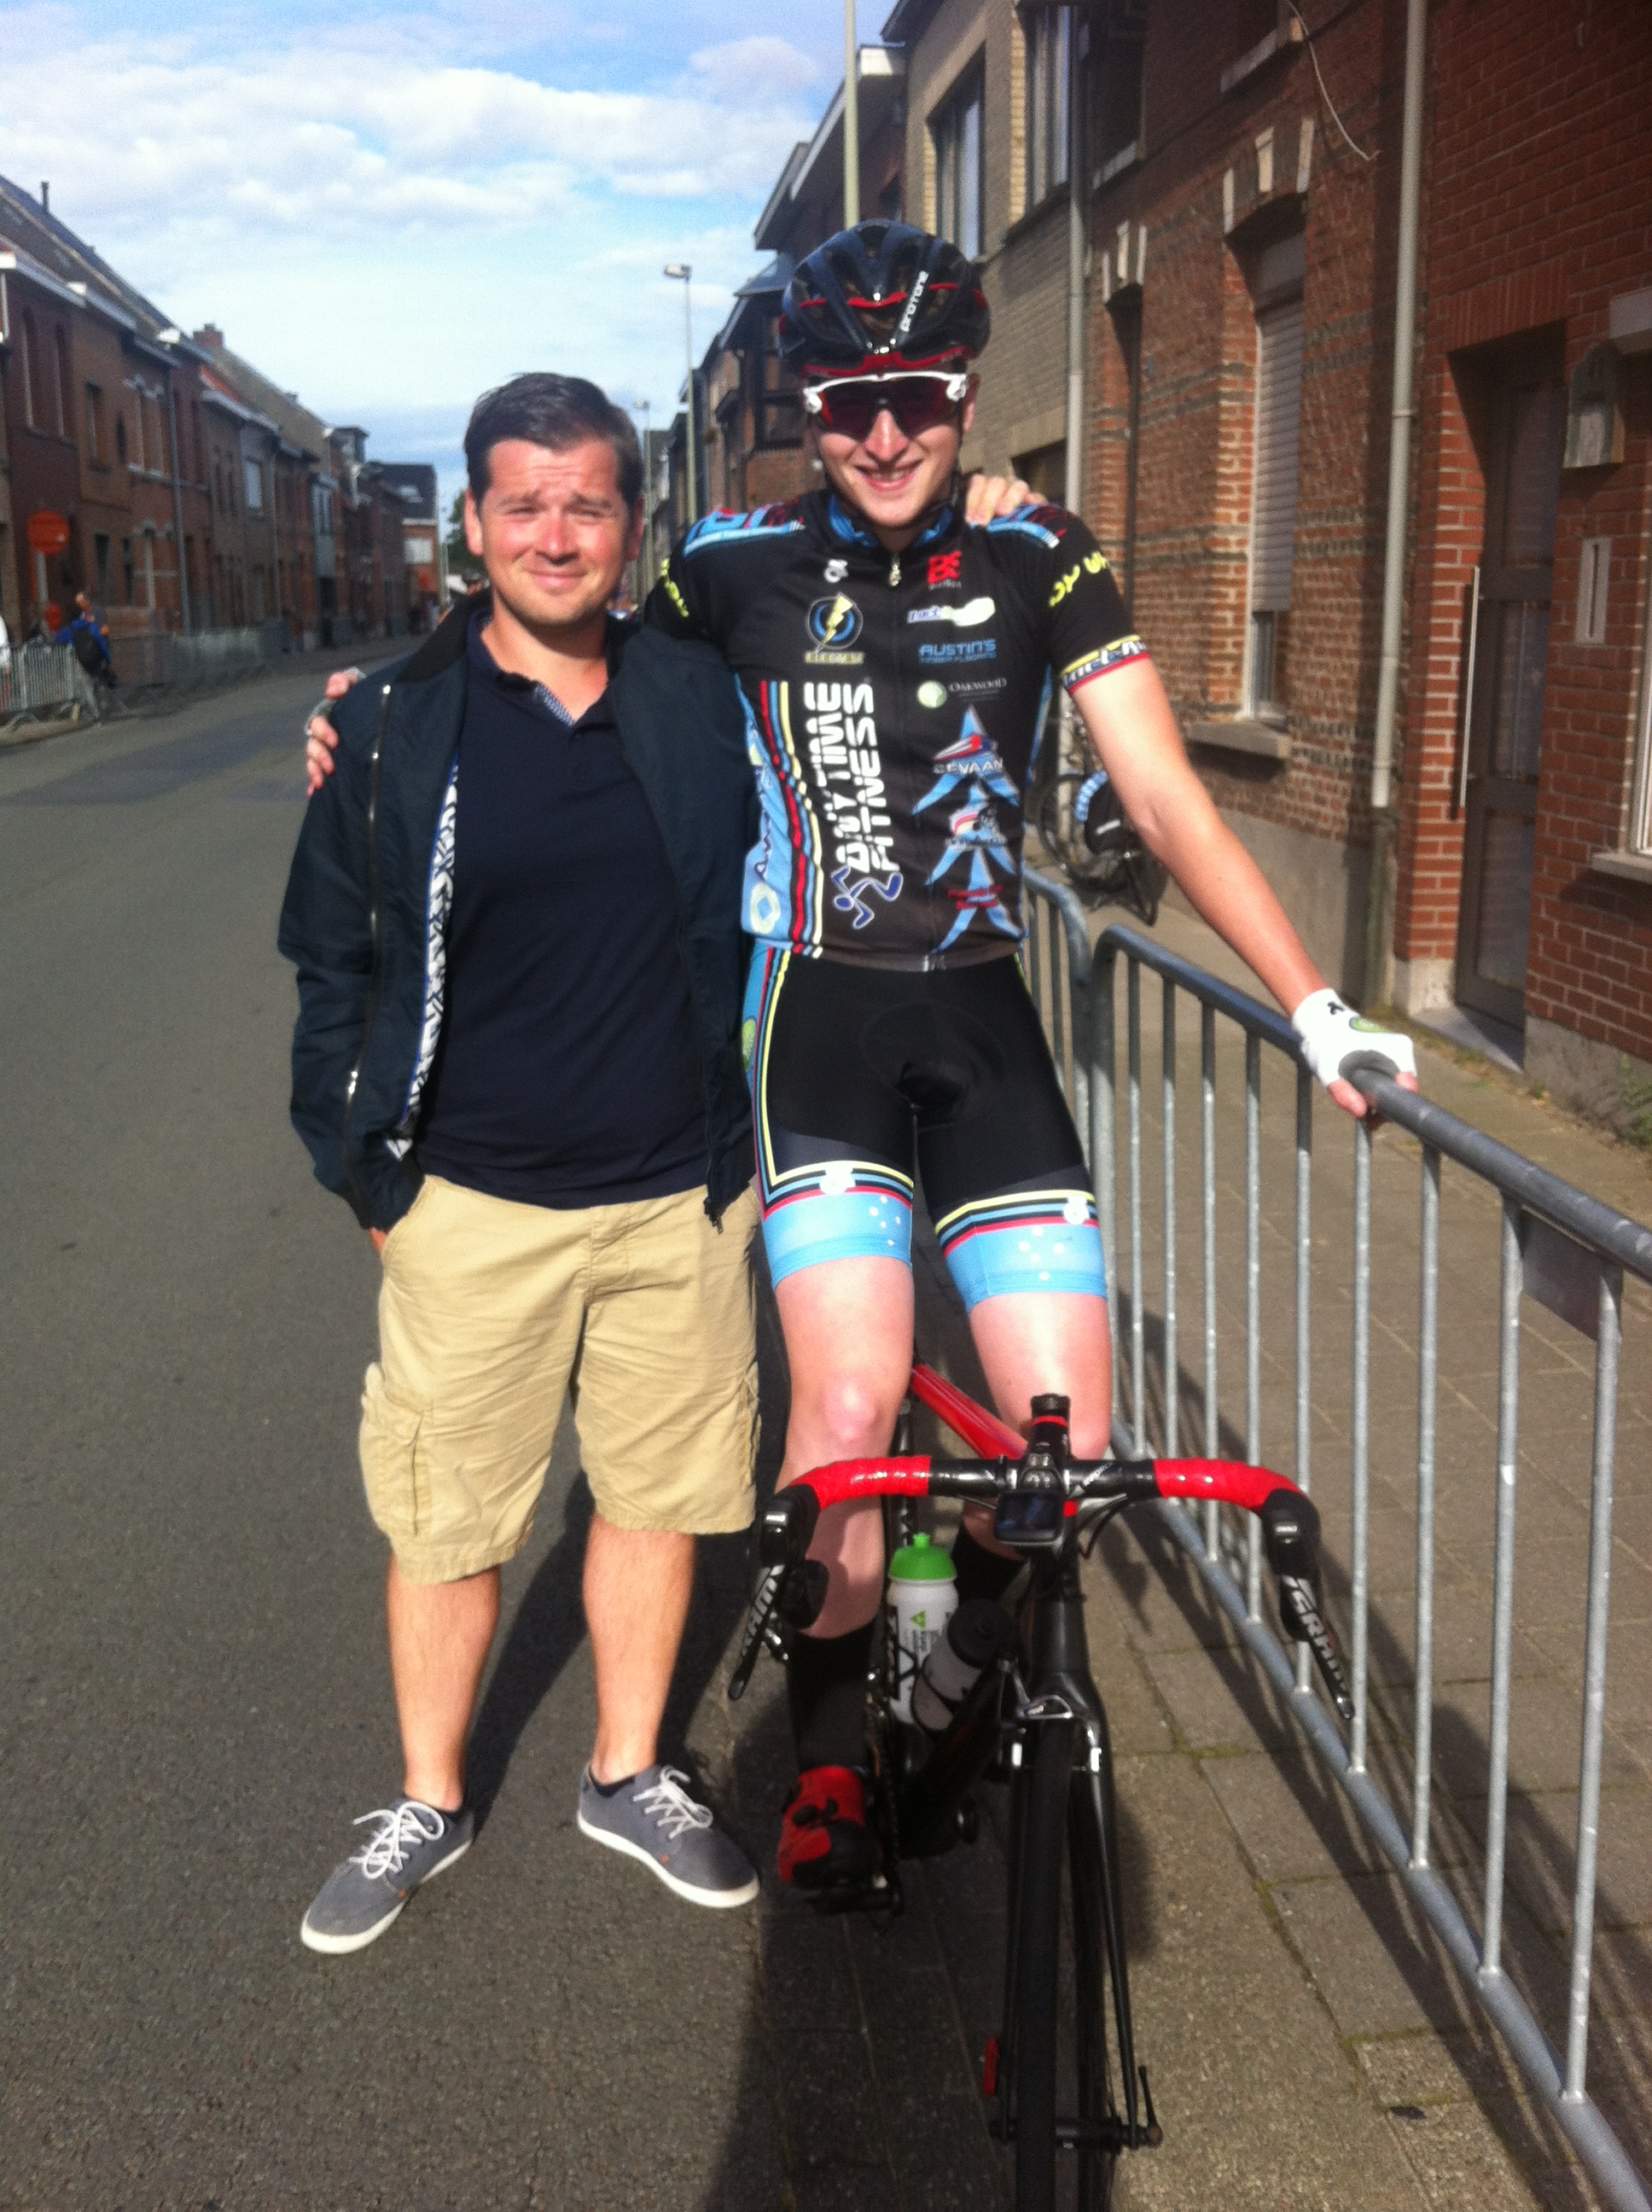 Maarten Verhulst & Conor at Beveren. Maarten is not only the Race Director at the Velle race on August 16 (Conor's last race) but kindly assisted with getting the WAOD licence at short notice, provided lunch and a hot shower afterwards.